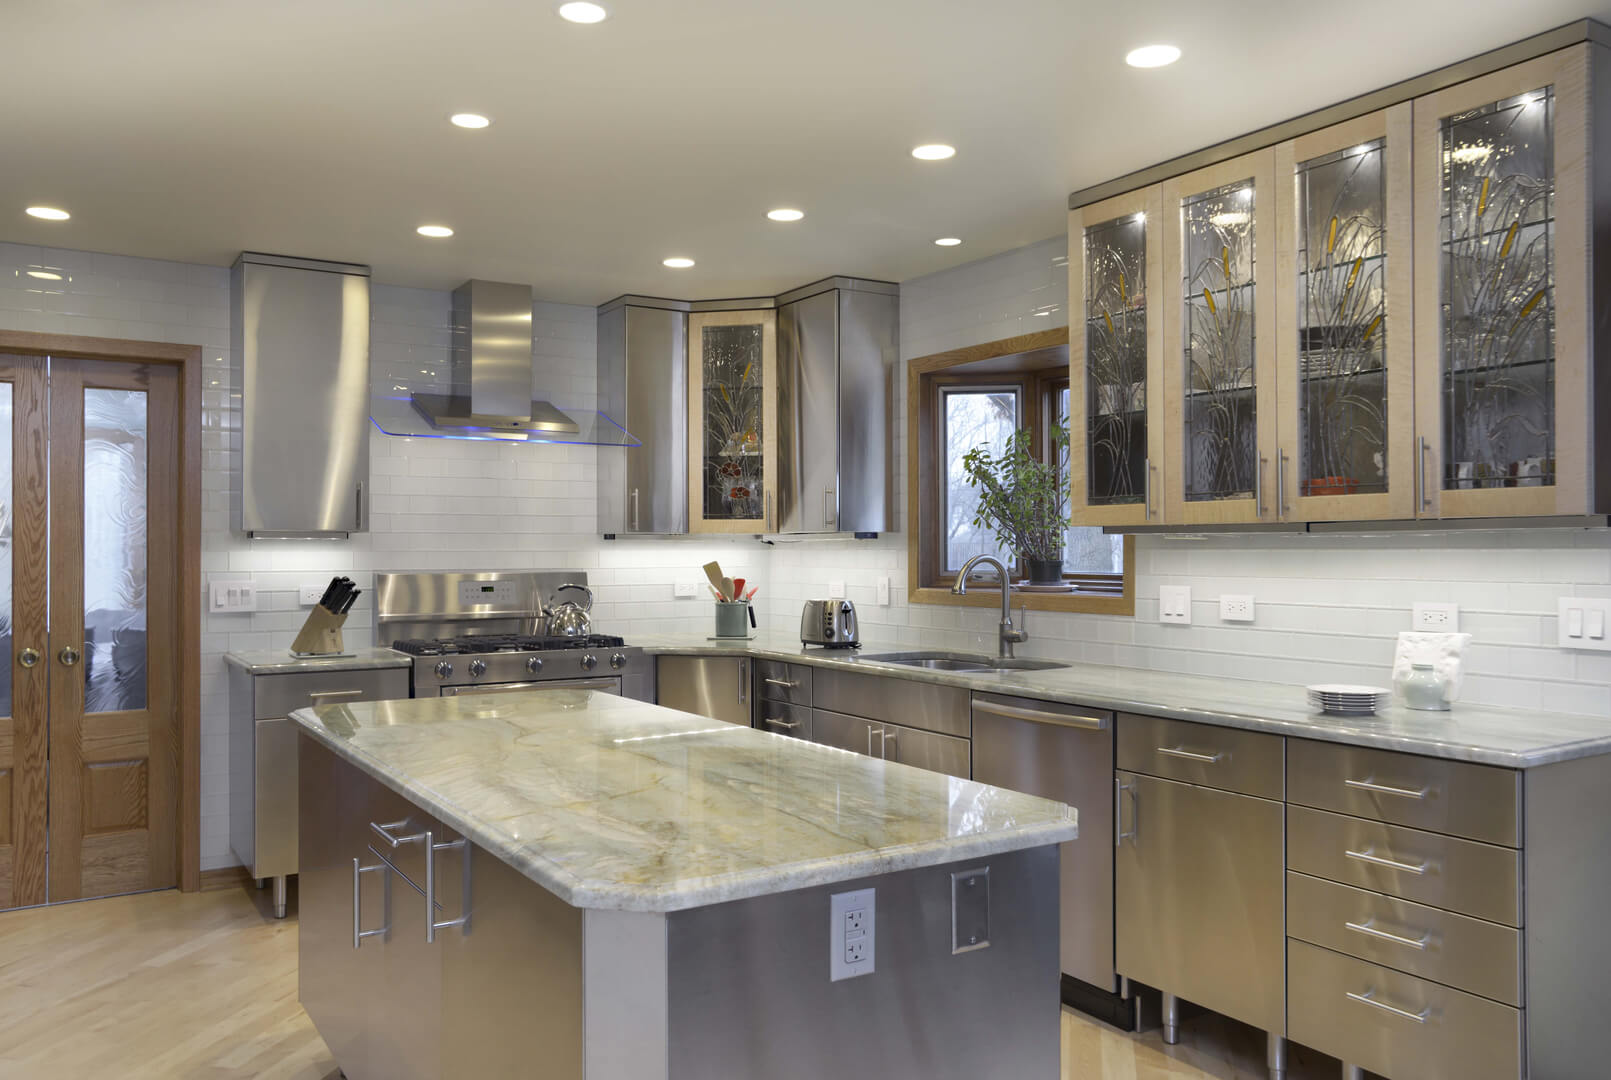 Kitchens Stainless Steel